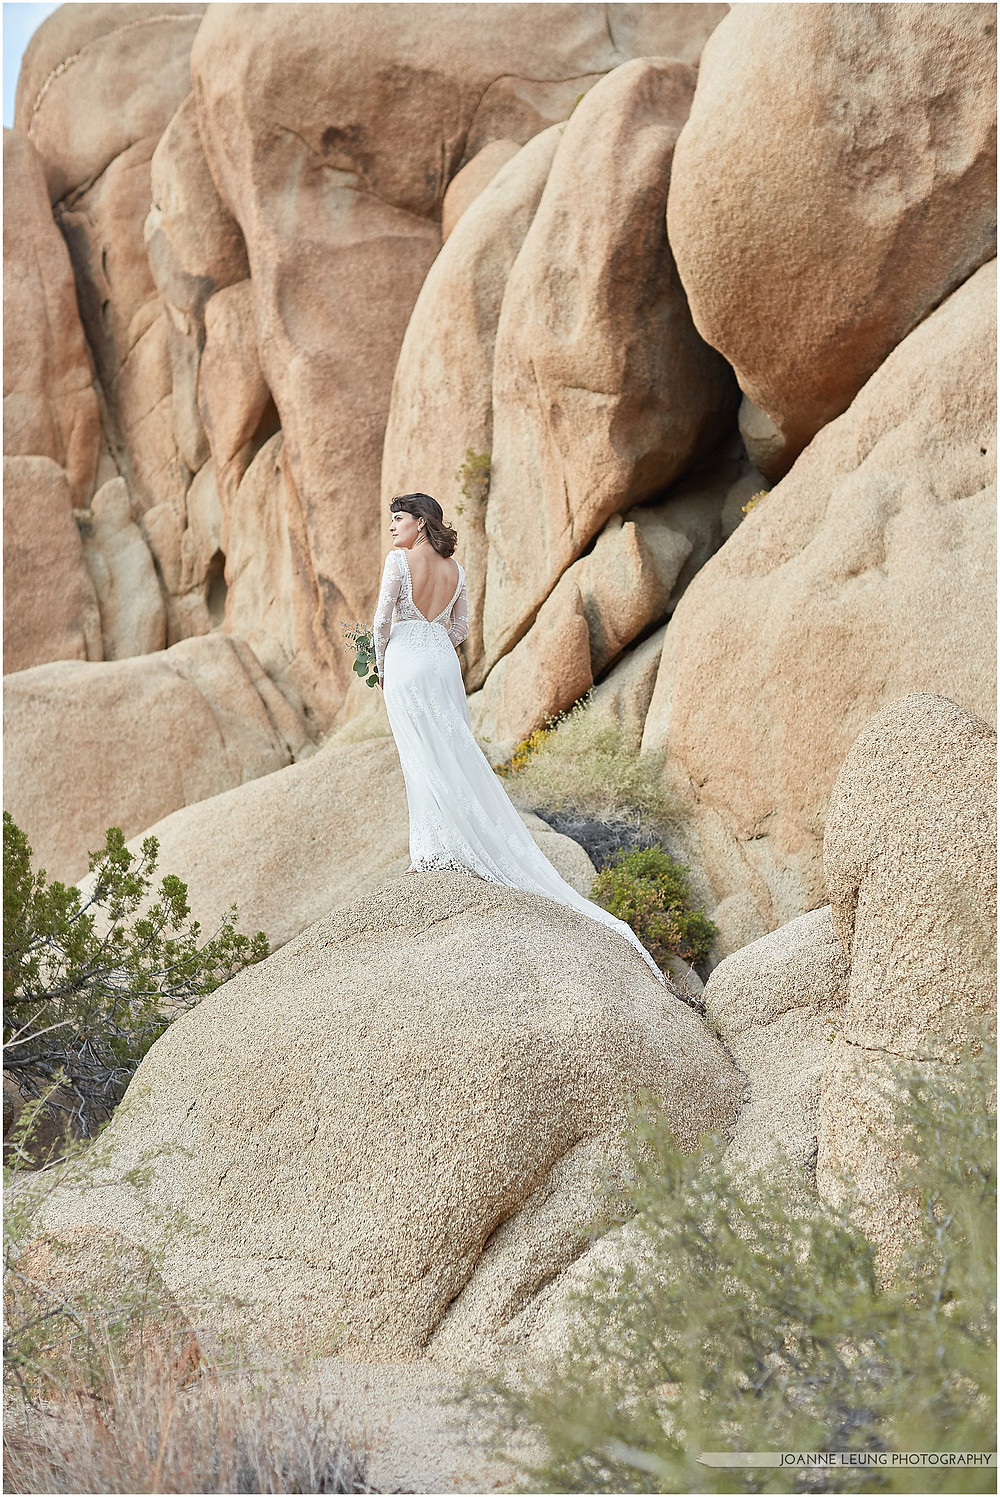 Joshua Tree Live Oak Wedding untraditional nature rocks amazing bridal portraot long dress train backless dress